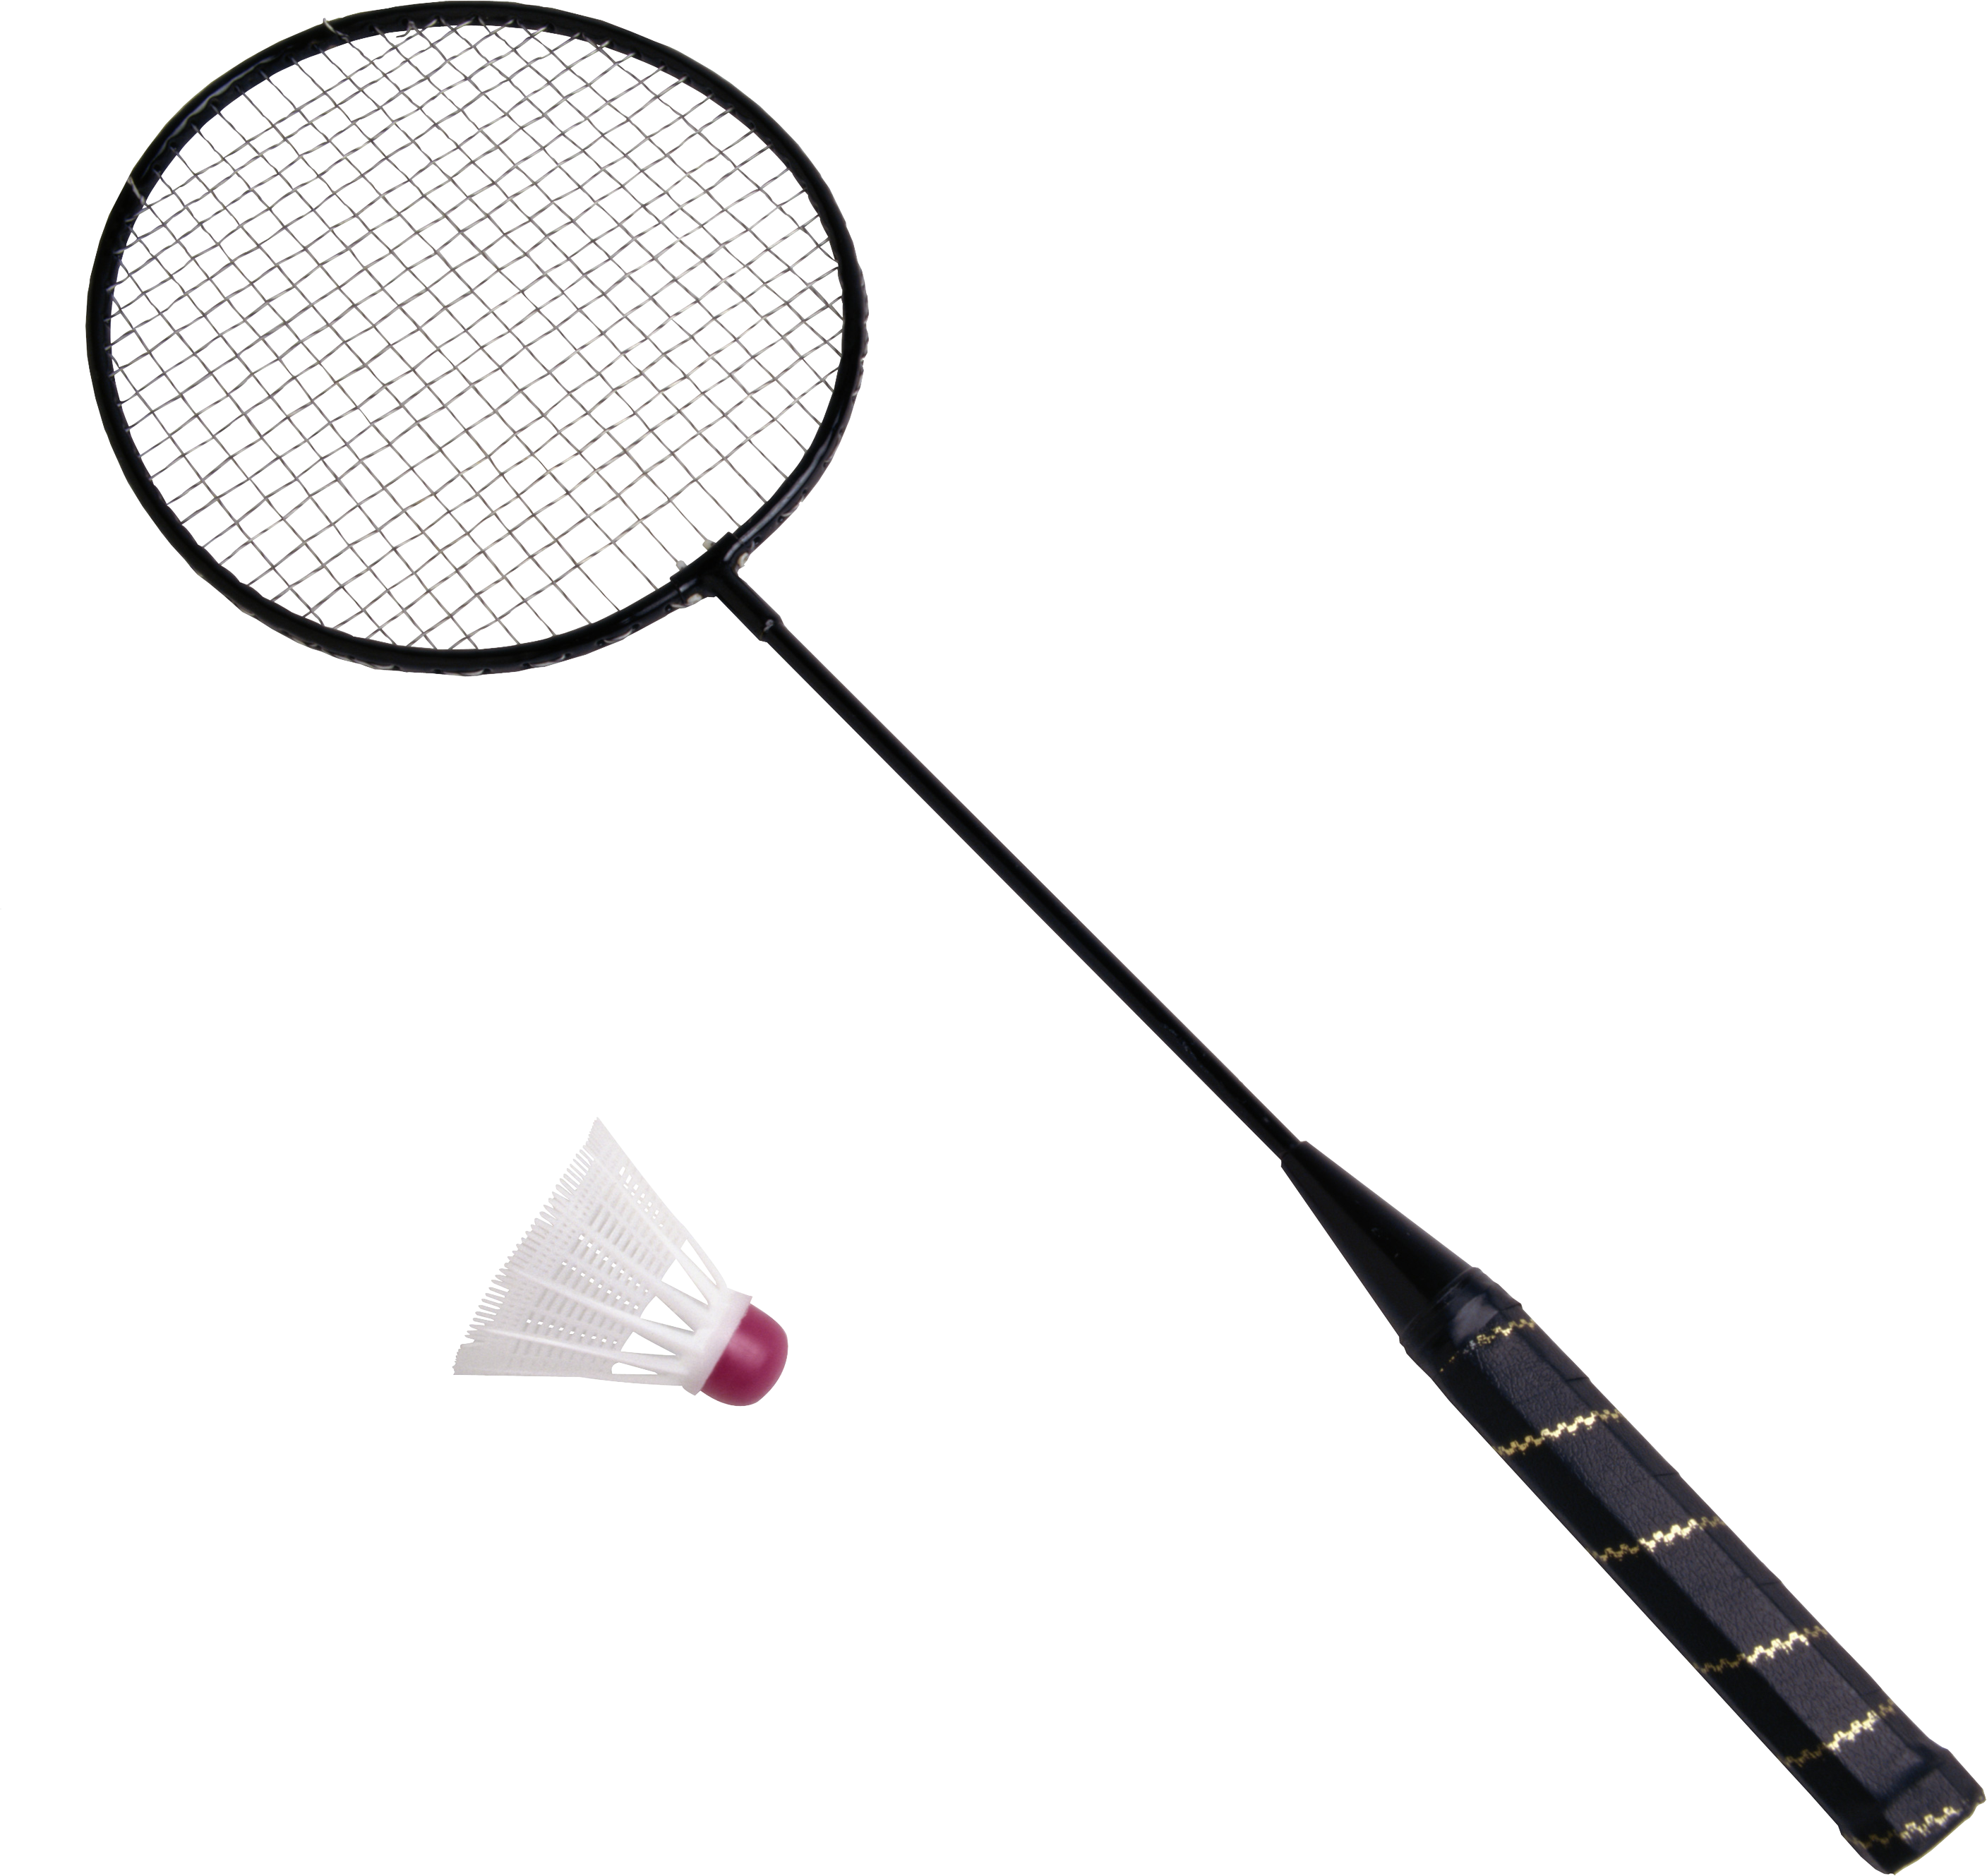 svg library stock Transparent background free on. Badminton clipart.